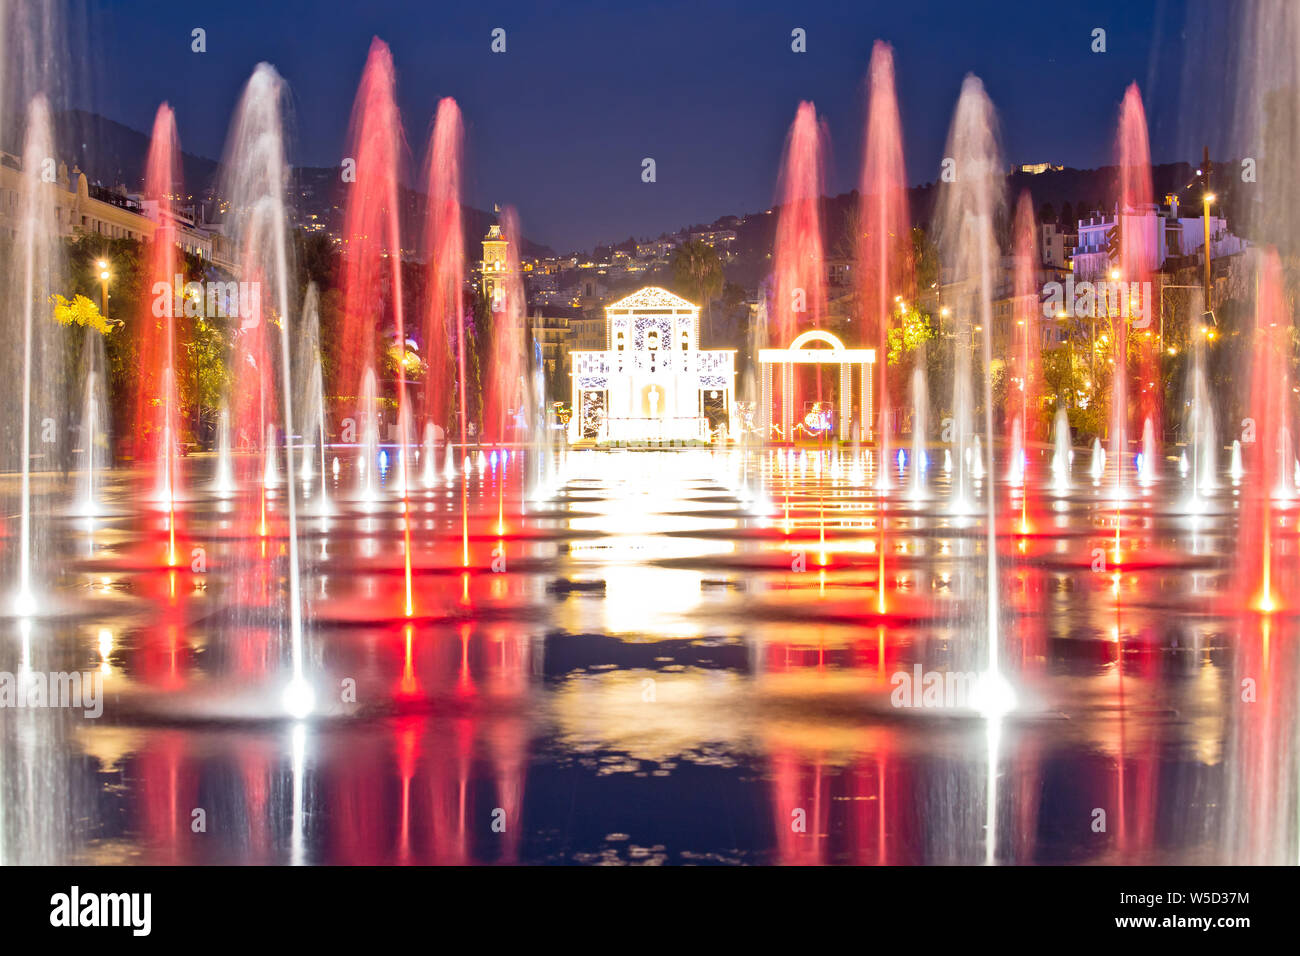 City of Nice cityscape and Fontaine Miroir d eau park evening view, Alpes-Maritimes region of France Stock Photo